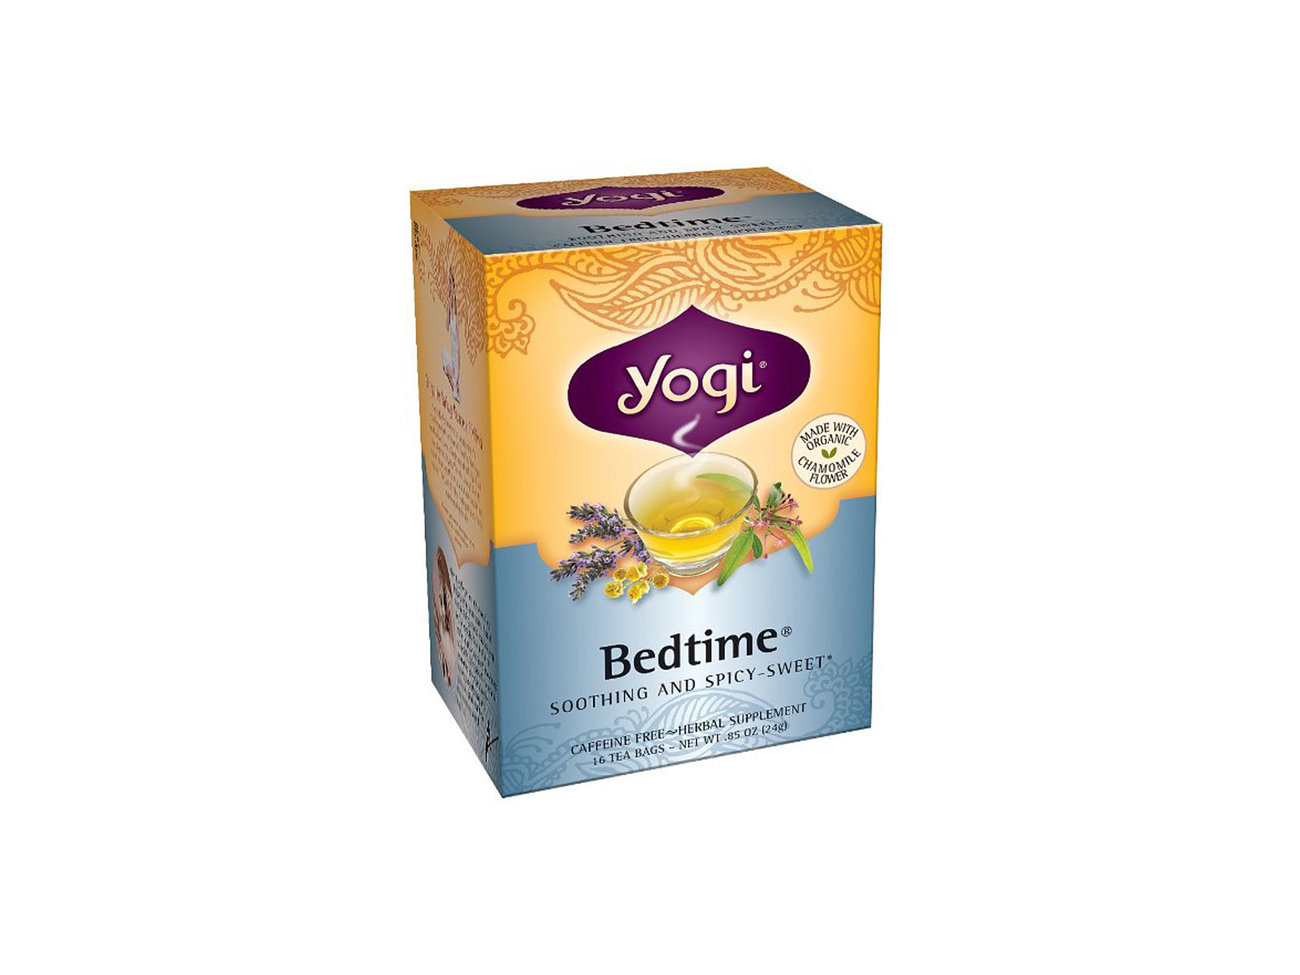 Sleepytime-Tea-Road-Sleep-PRODUCTS0316.jpg